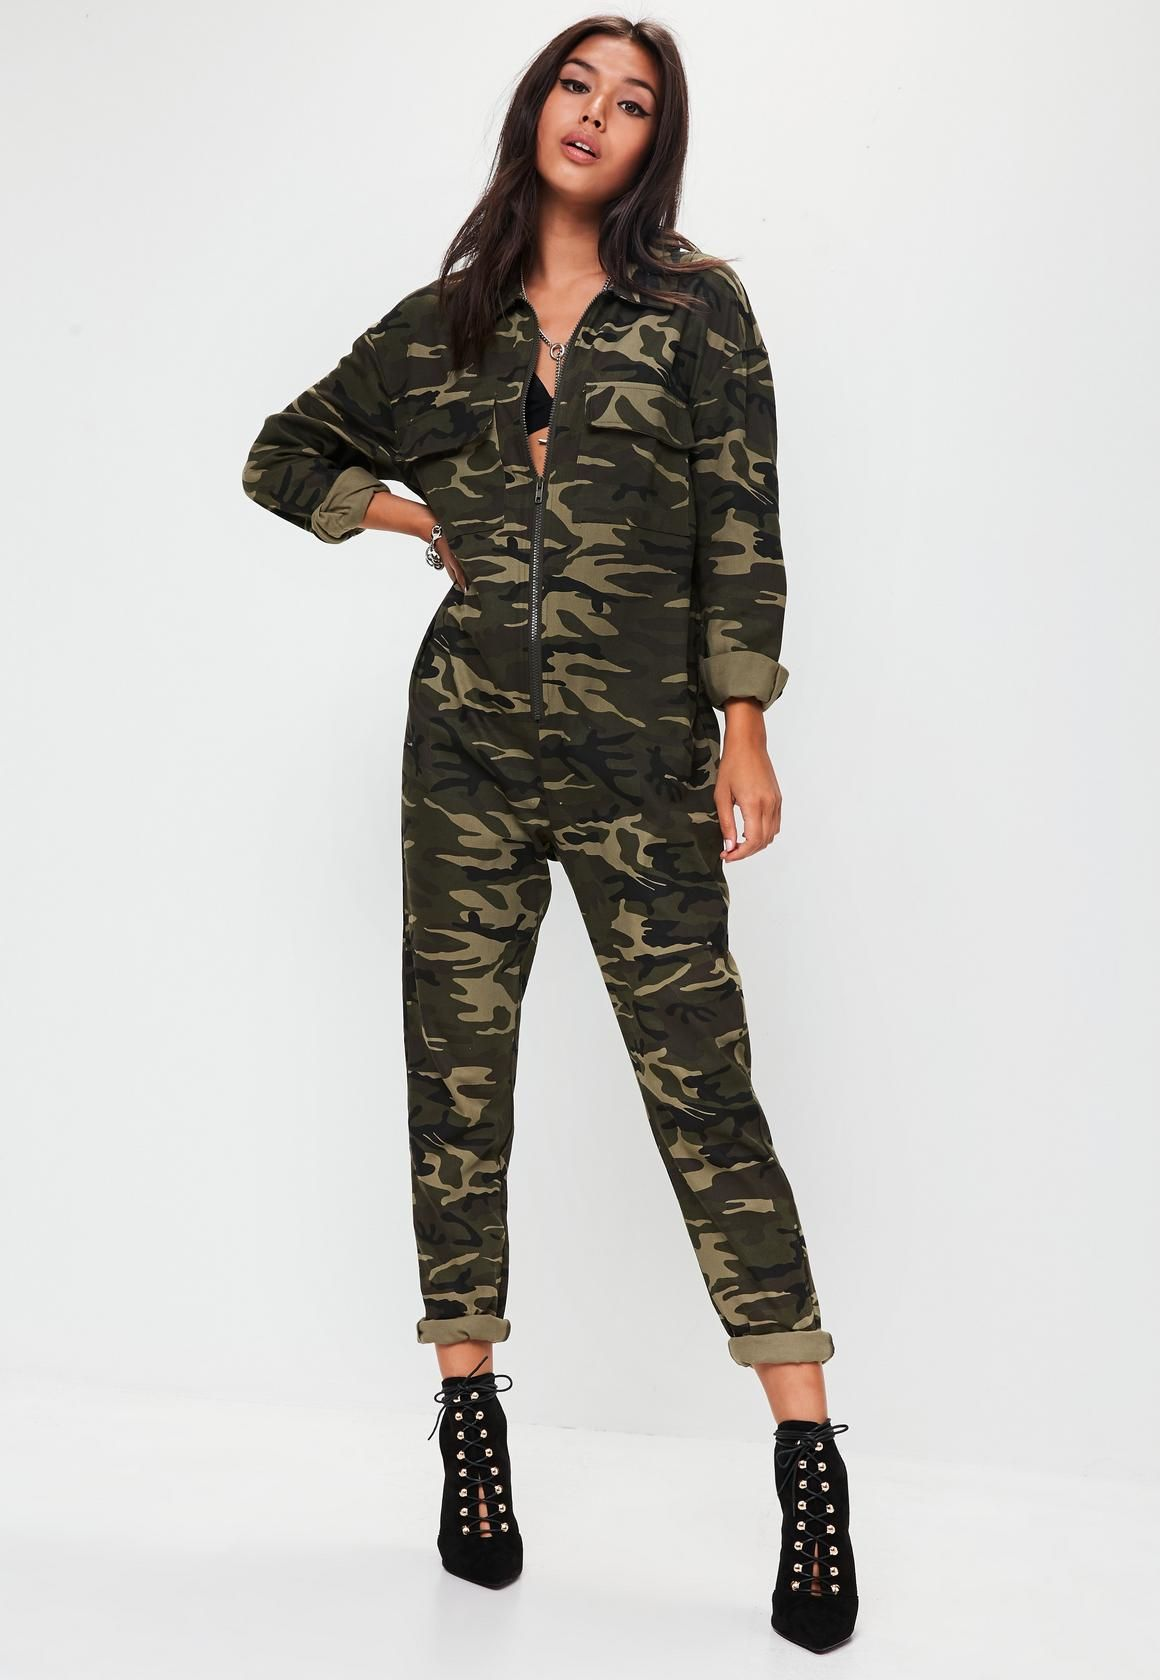 015b1adfada Missguided Green Camo Print Jumpsuit -  57